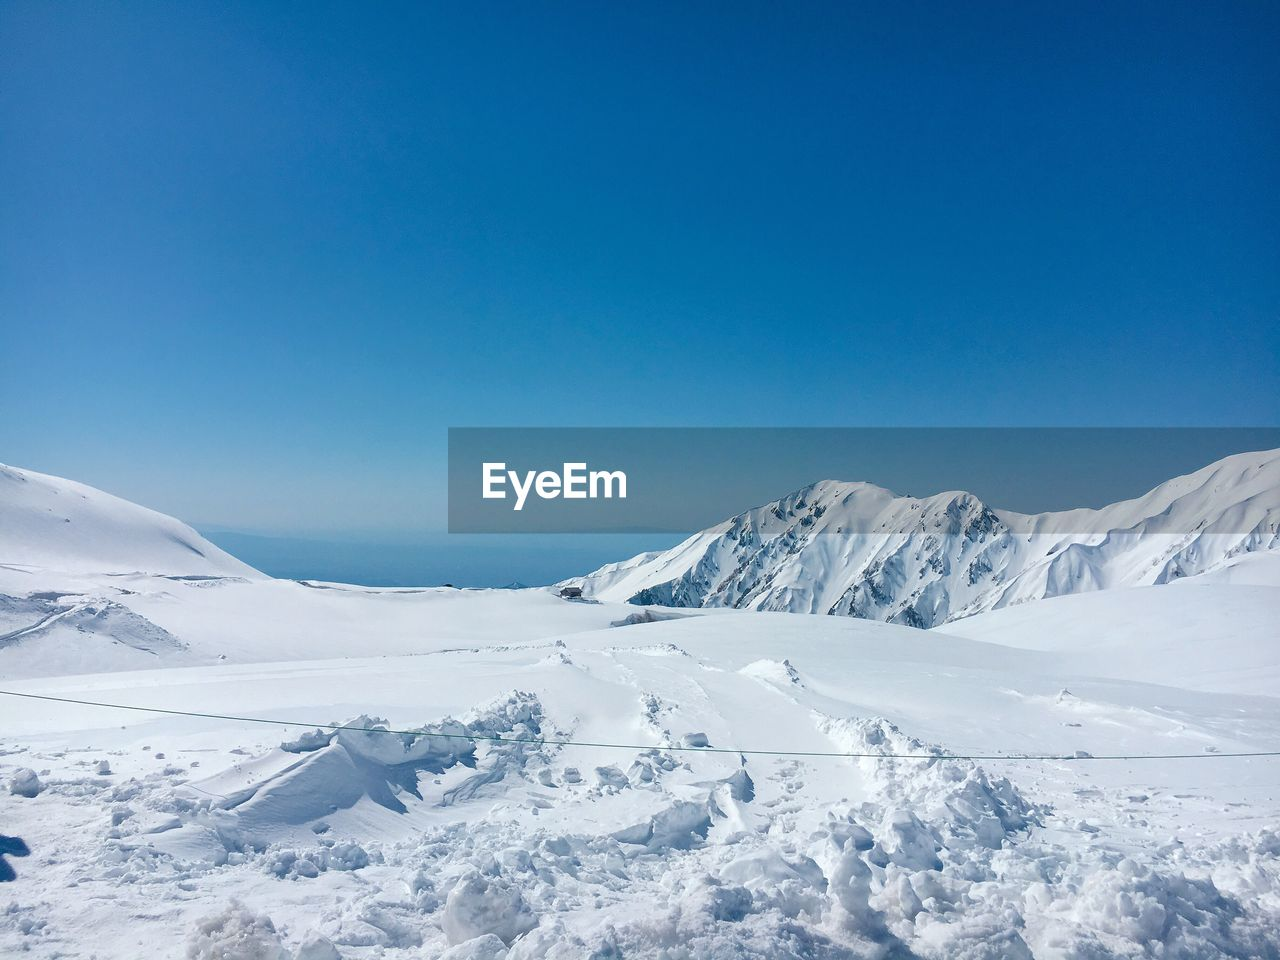 winter, snow, cold temperature, sky, blue, beauty in nature, tranquil scene, scenics - nature, tranquility, copy space, clear sky, mountain, white color, environment, nature, non-urban scene, day, no people, snowcapped mountain, extreme weather, mountain peak